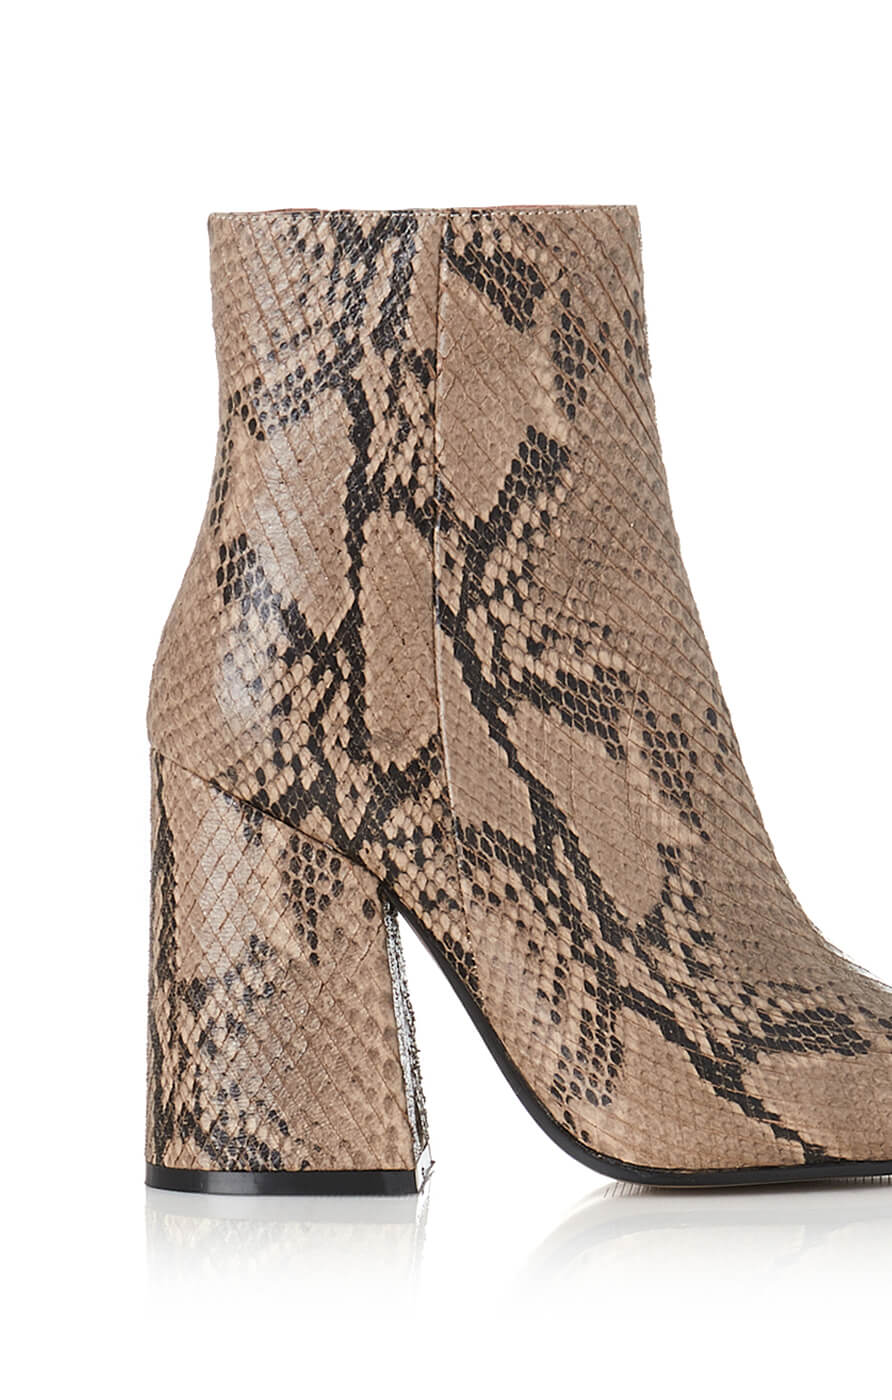 THE AHARA BOOT - BEIGE SNAKE LEATHER